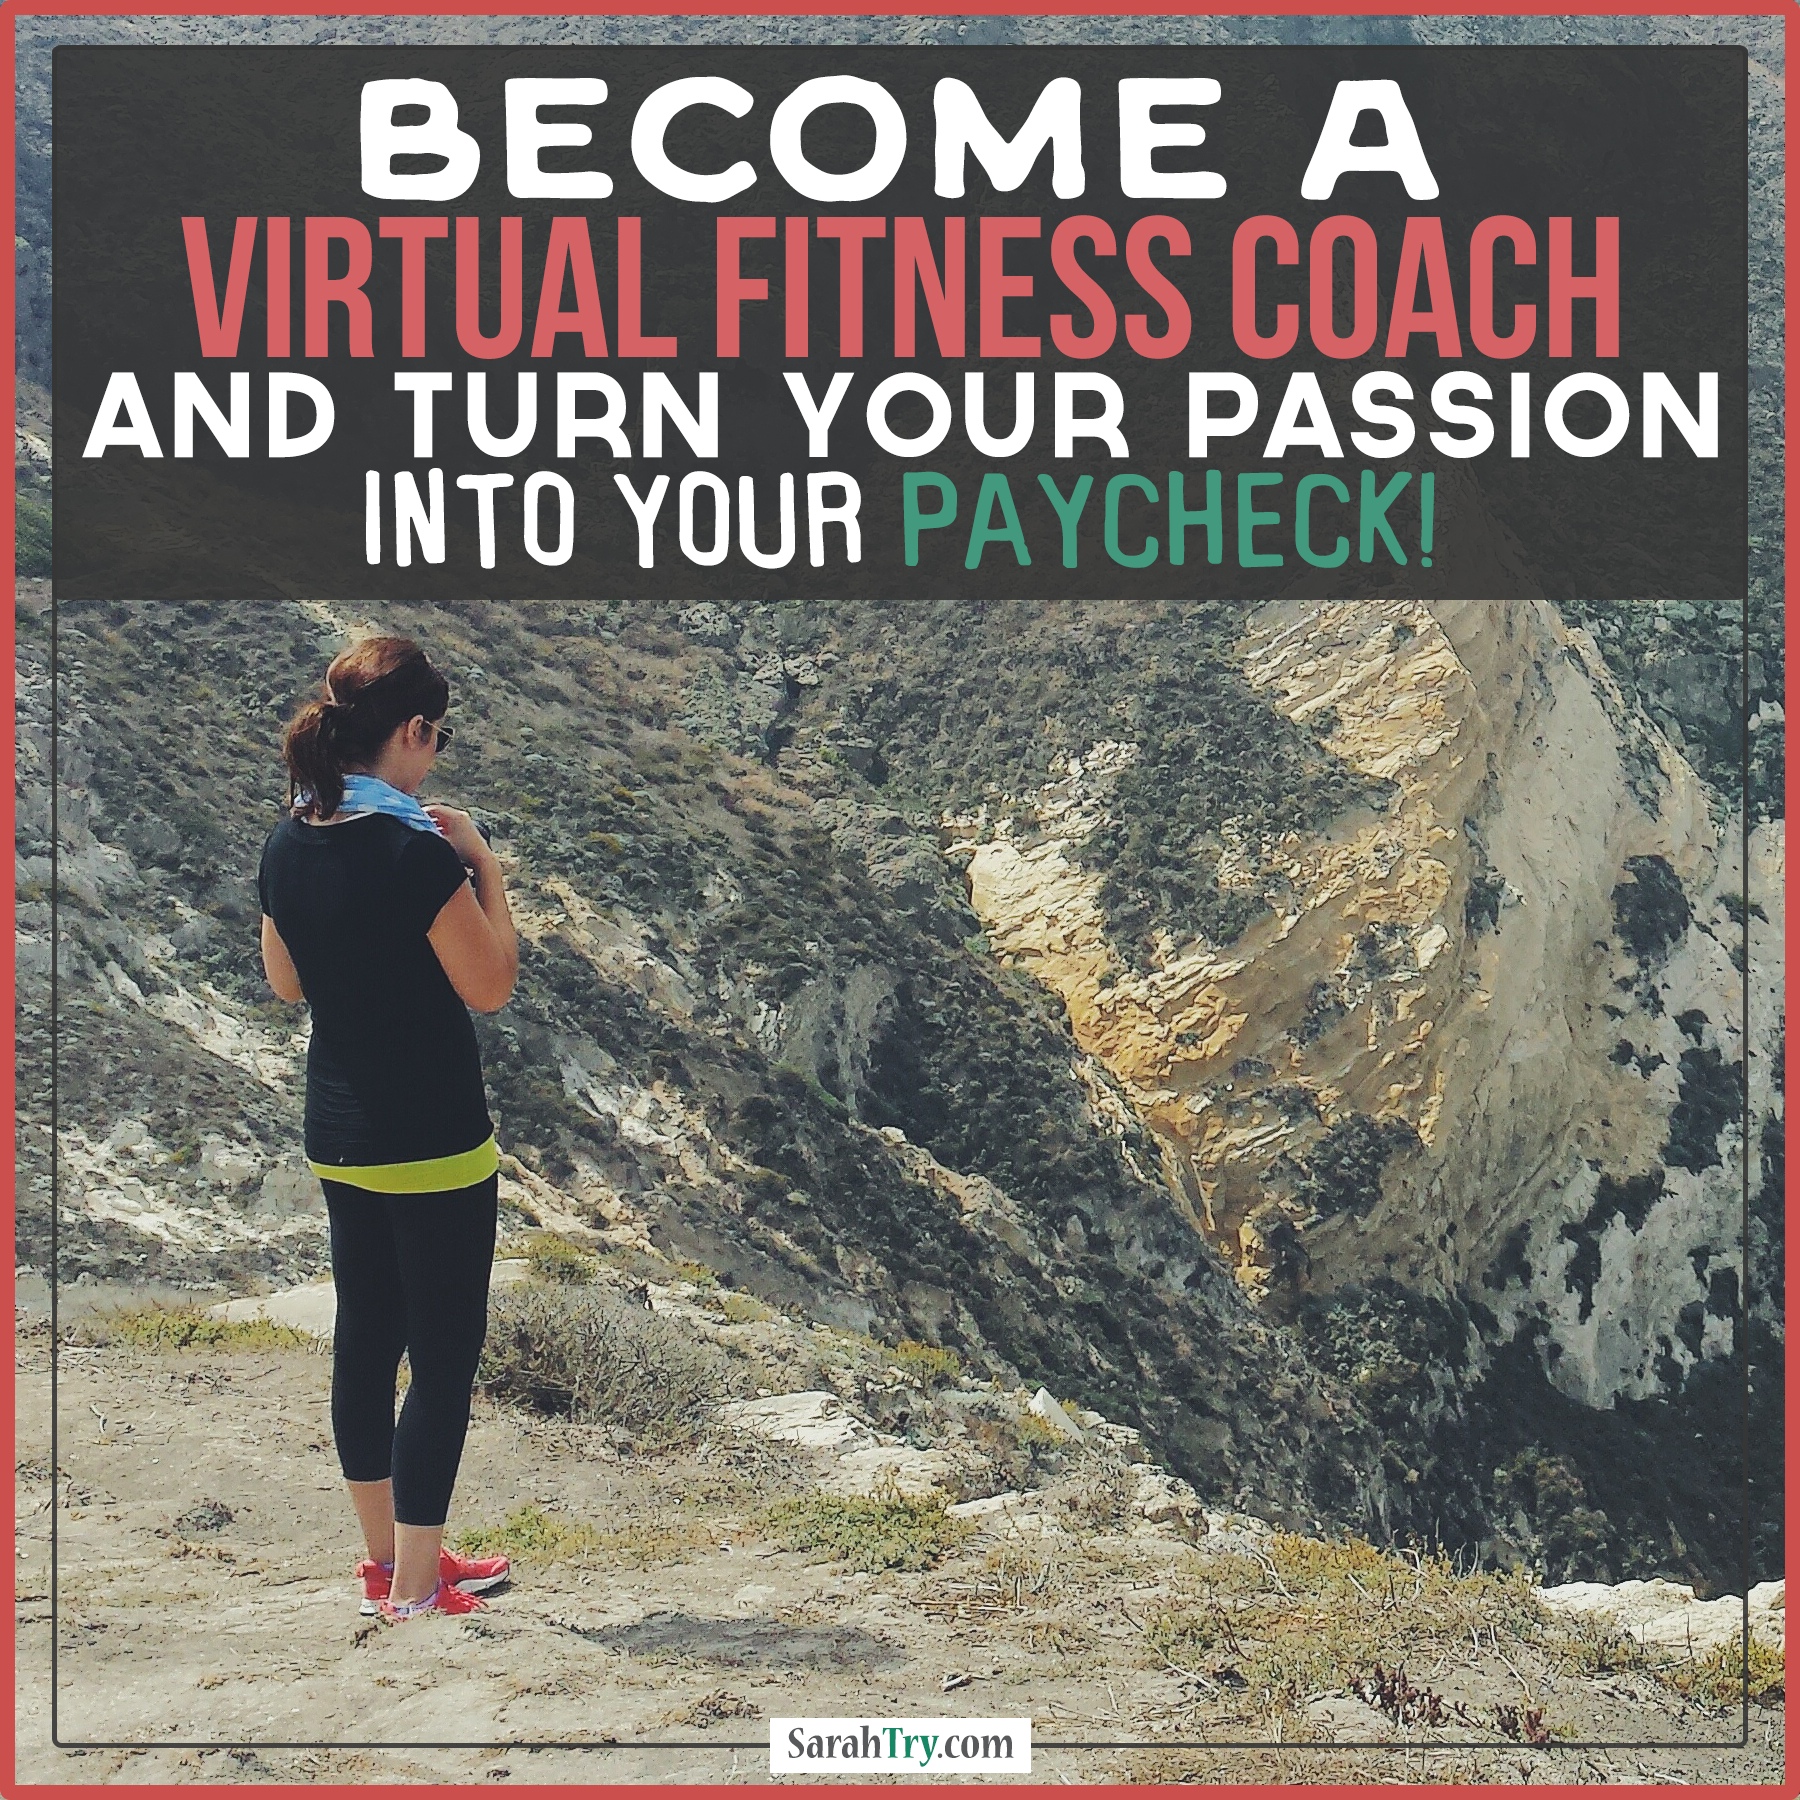 Business Inspiration! Passionate about Fitness? Turn Your Passion into your Paycheck! I have built a 6 figure business as a Virtual Fitness Coach. Learn more about my mentorship programs to help you do the same! www.SarahTry.com/beafitnesscoach